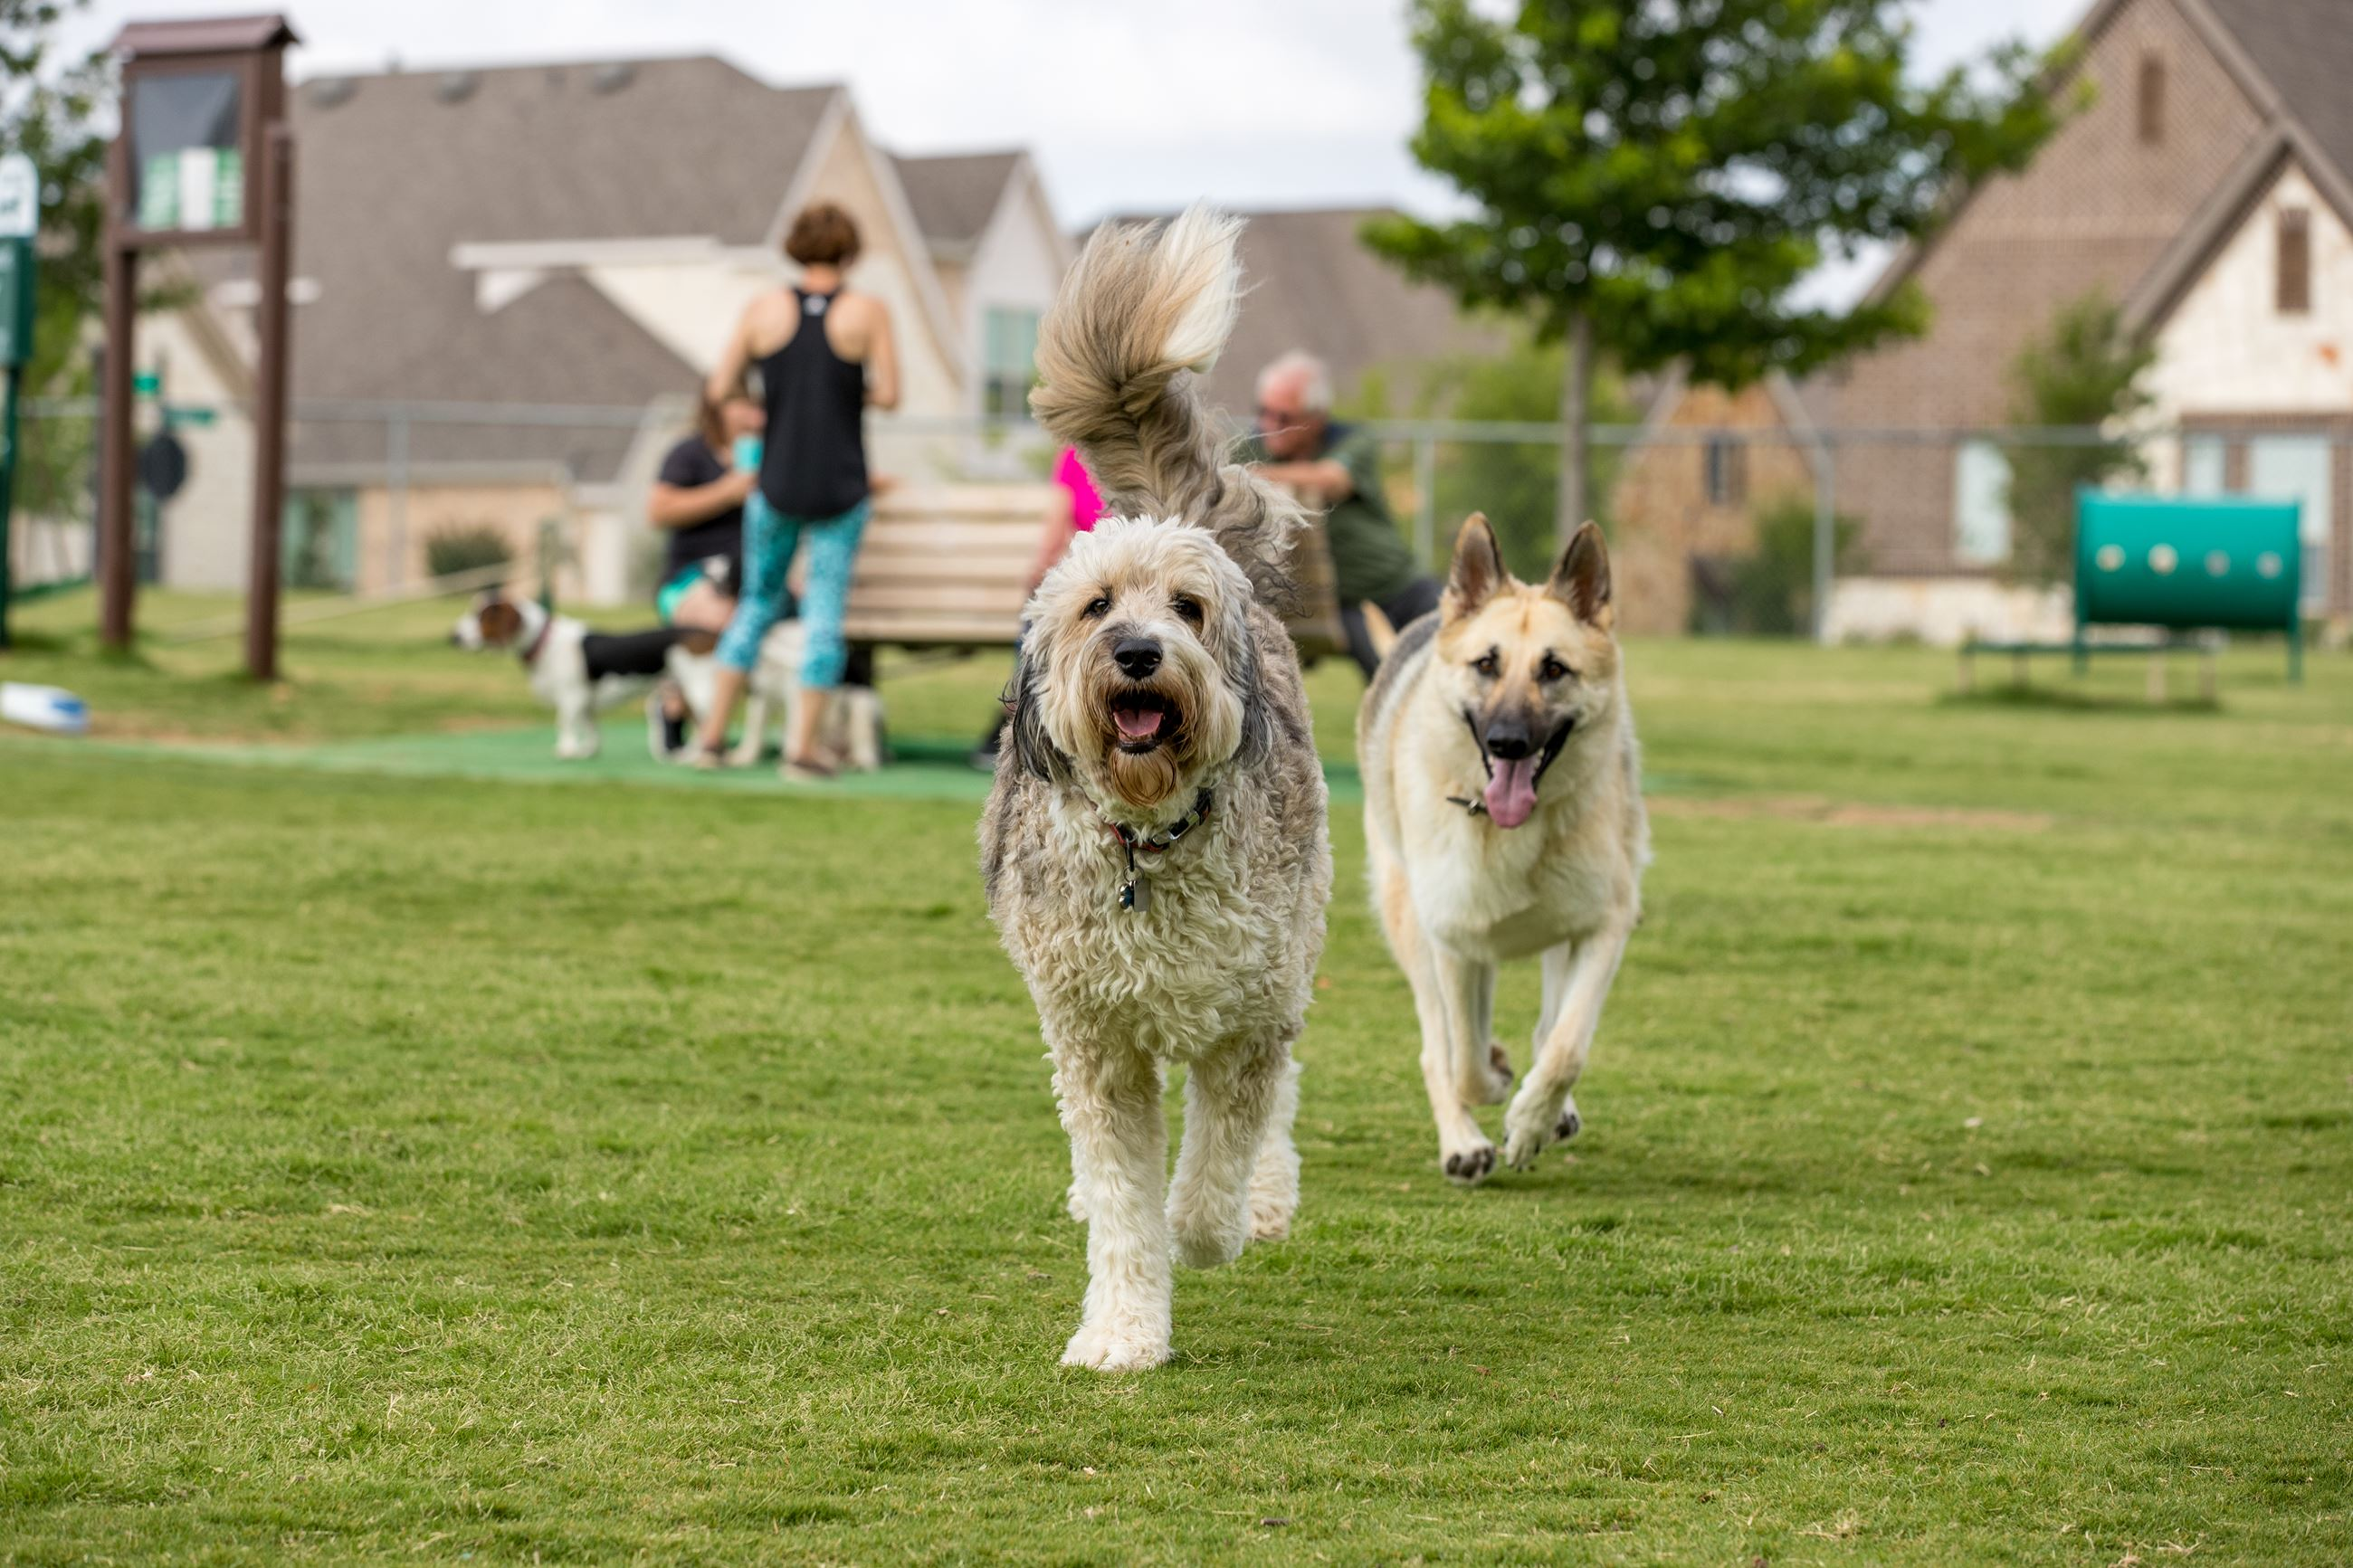 Trophy Club's 11th annual Pet Fest brings pets and pet owners together for a community pet fair celebrating man's best friend will be September 07, 2019.  Join us!